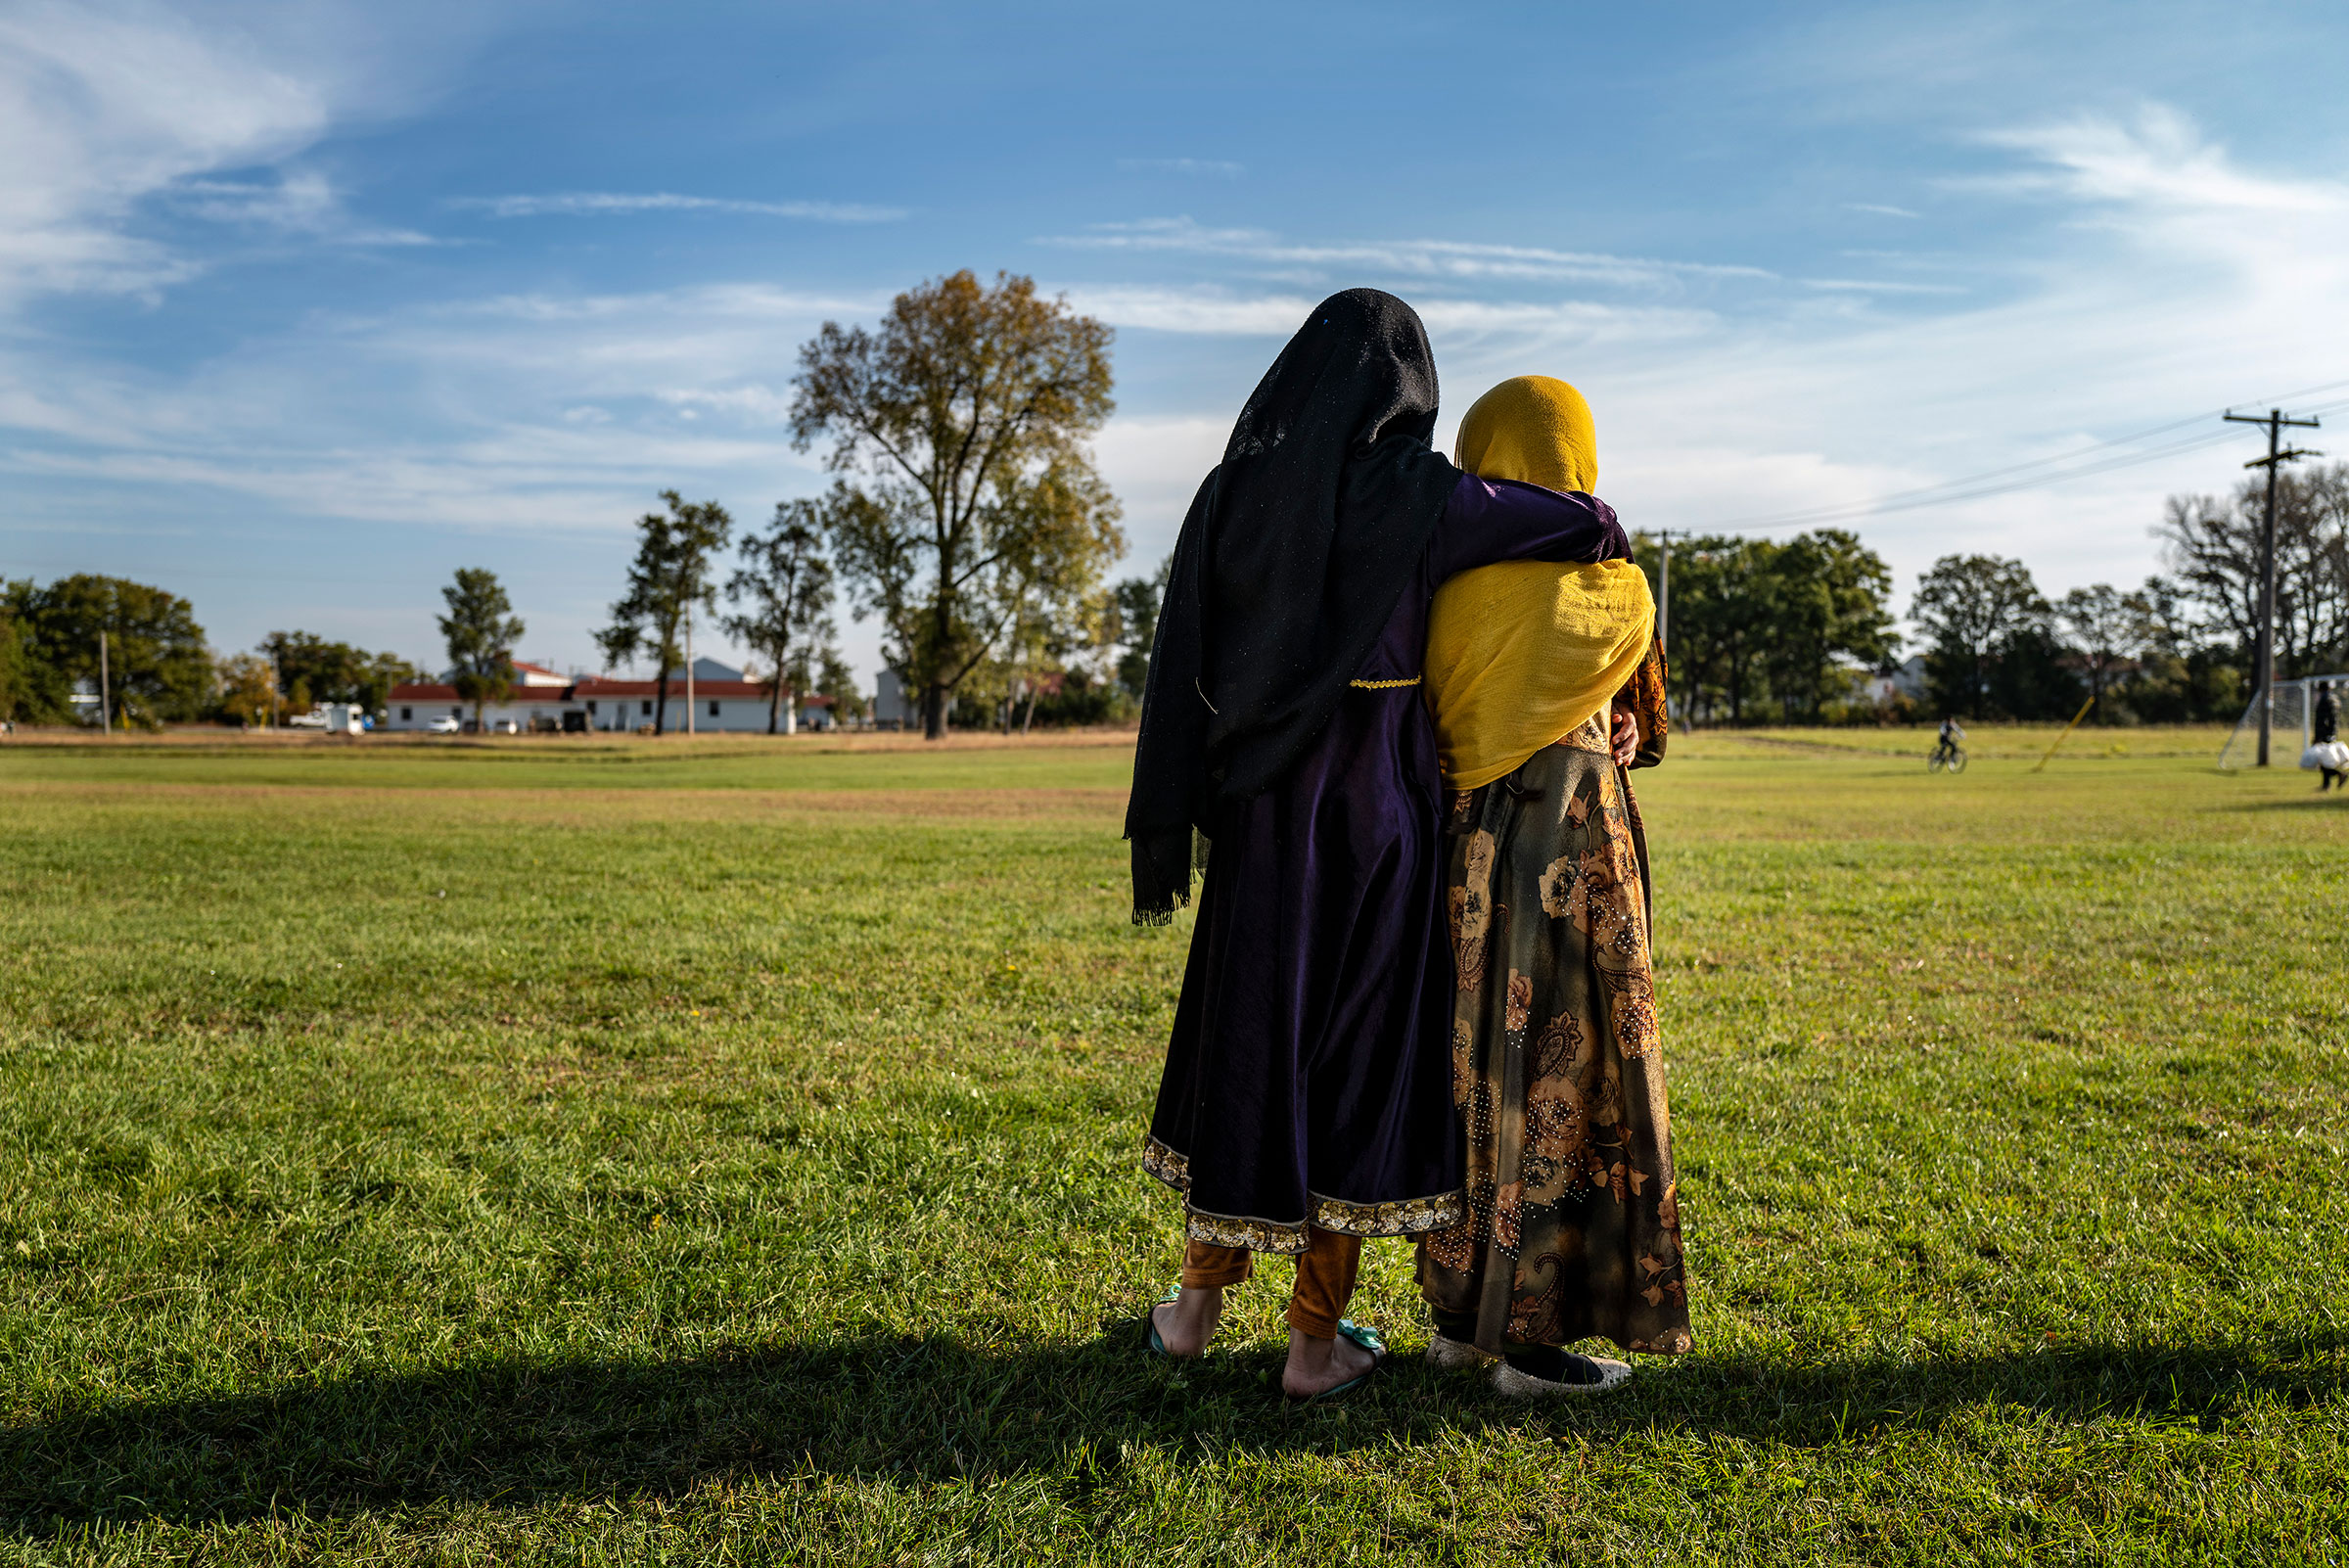 Afghan refugee girls watch a soccer match near where they are staying in the Village at the Ft. McCoy U.S. Army base on September 30, 2021 in Ft. McCoy, Wisconsin. There are approximately 12,600 Afghan refugees at the base under Operation Allies Welcome.